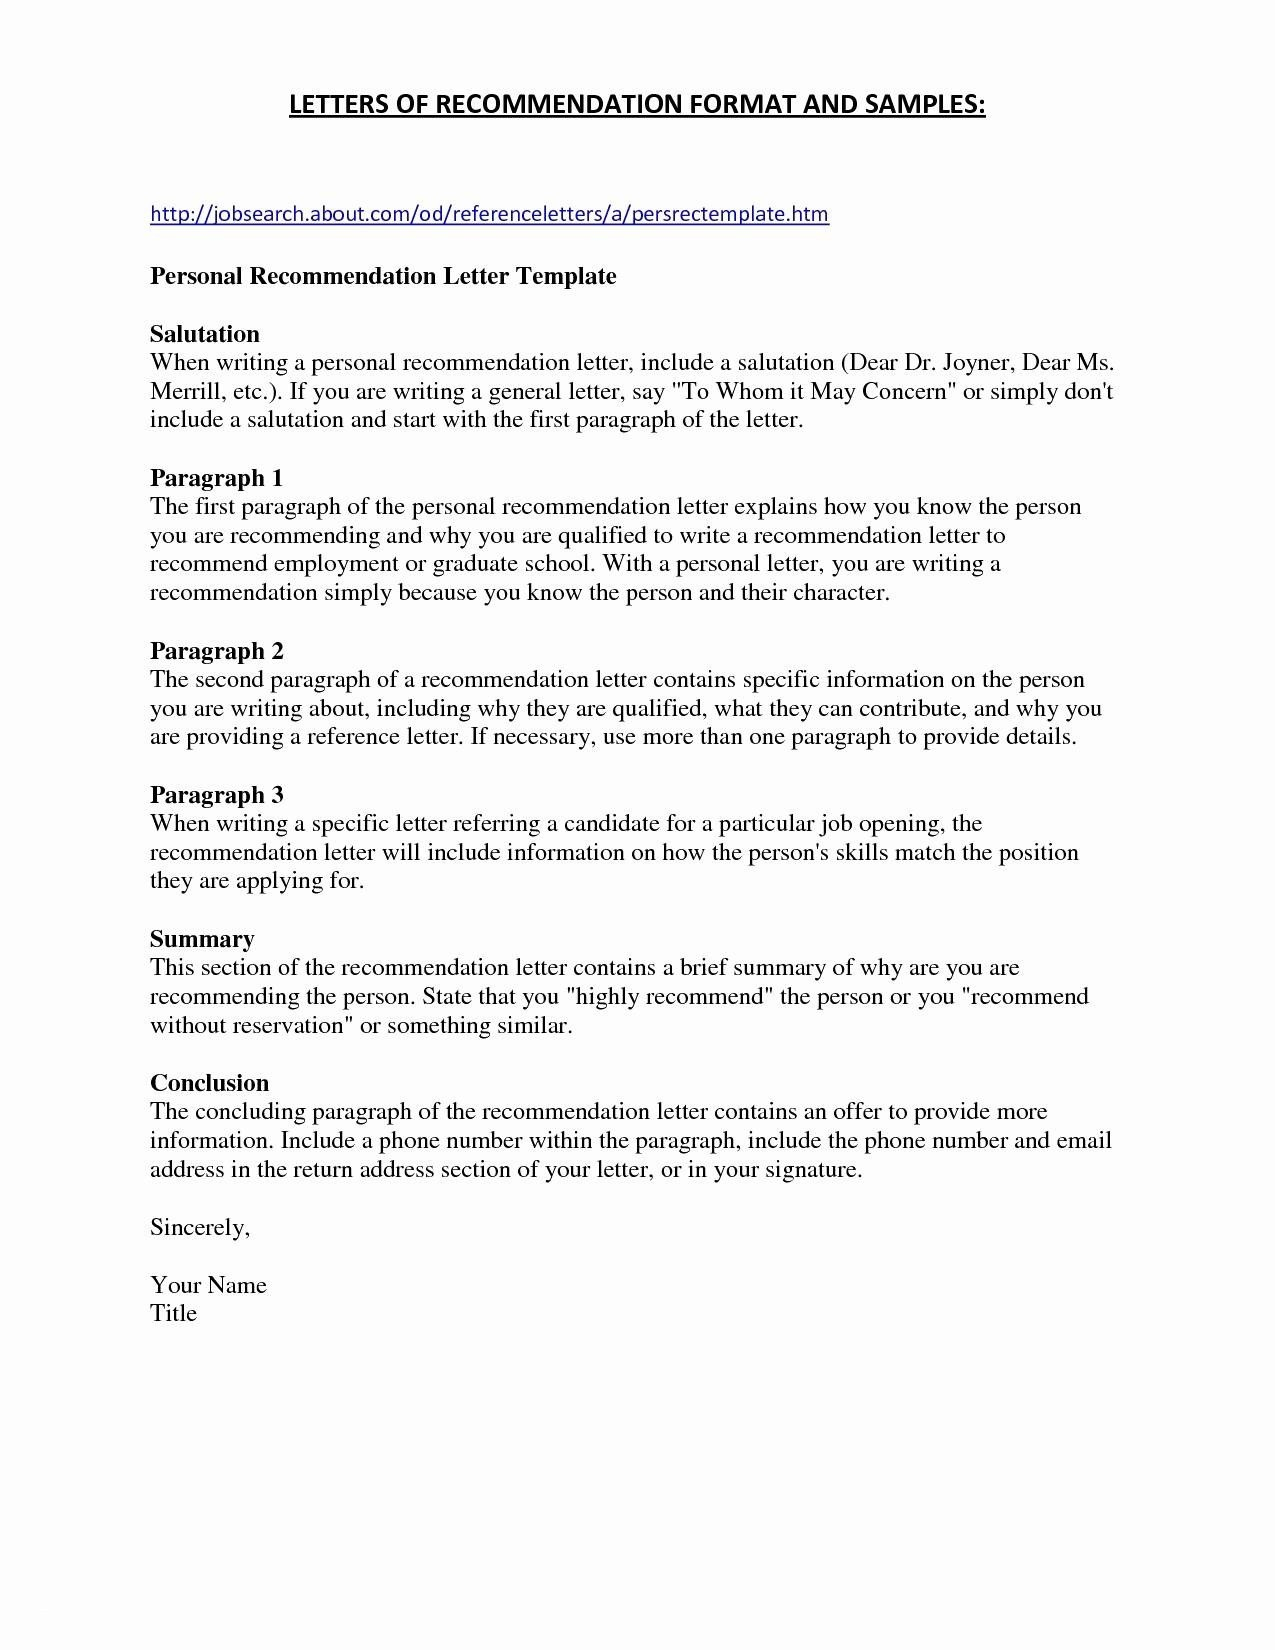 Human Resources Resume Summary - 21 Human Resources Resume Skills